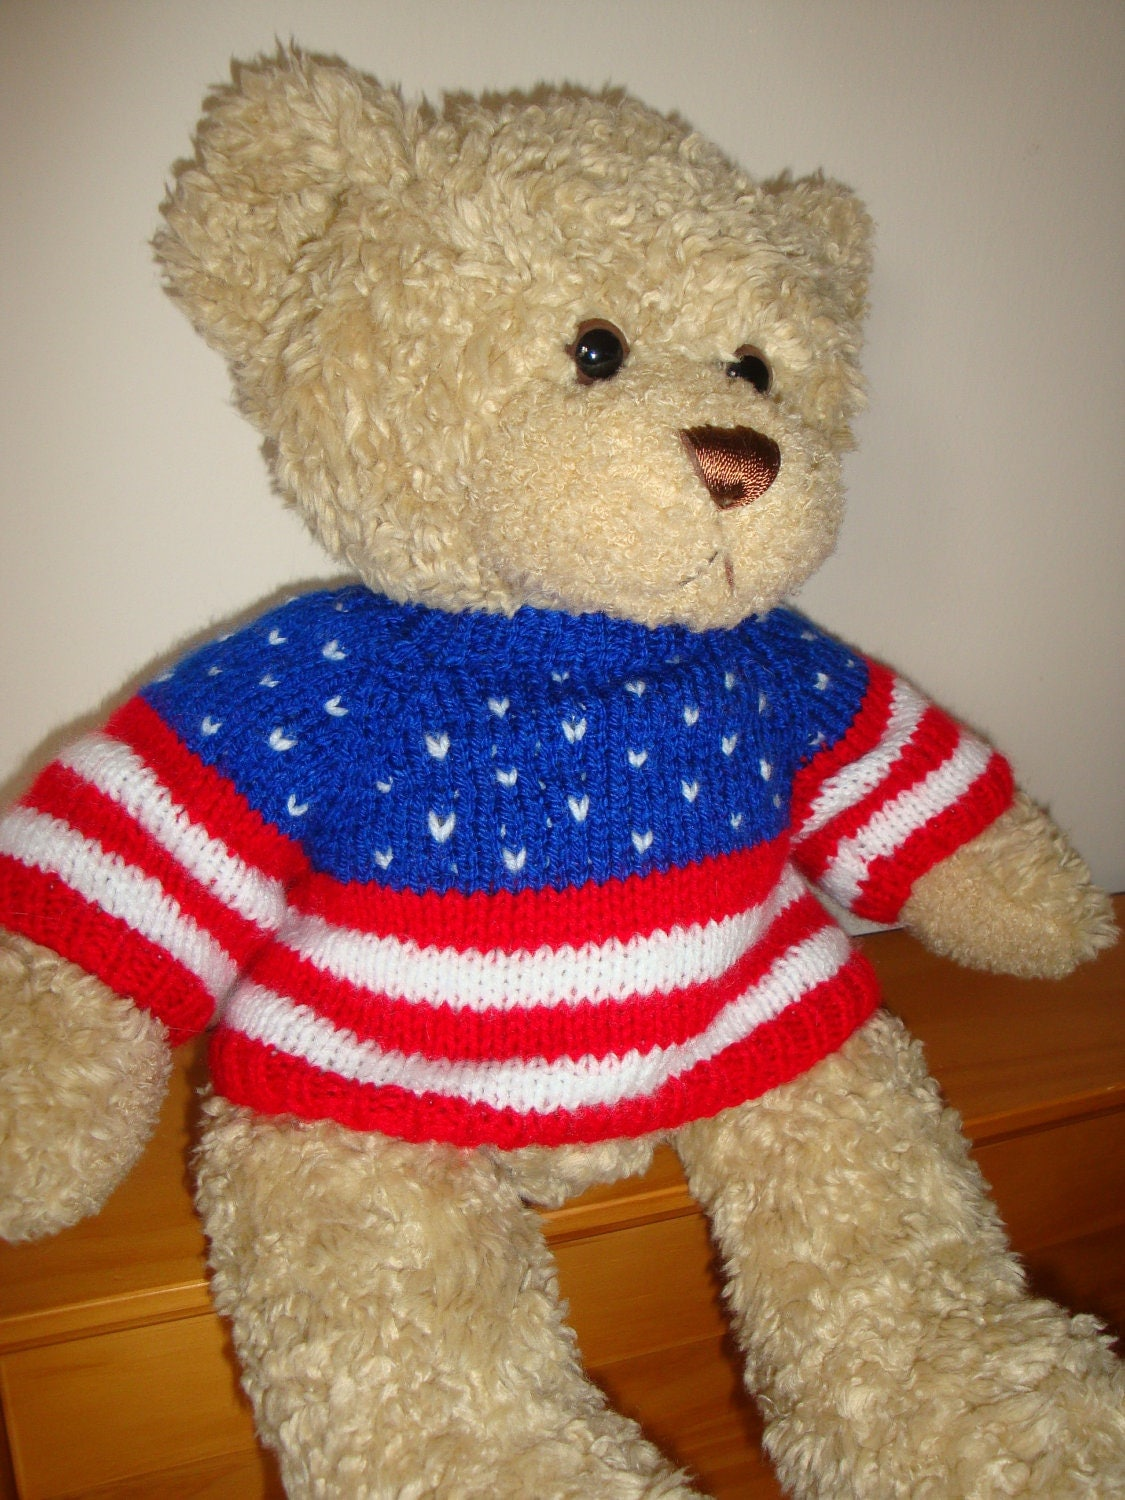 Knitting Pattern For Teddy Bear Sweater : Teddy Bear Sweater Hand knitted Stars and Stripes USA